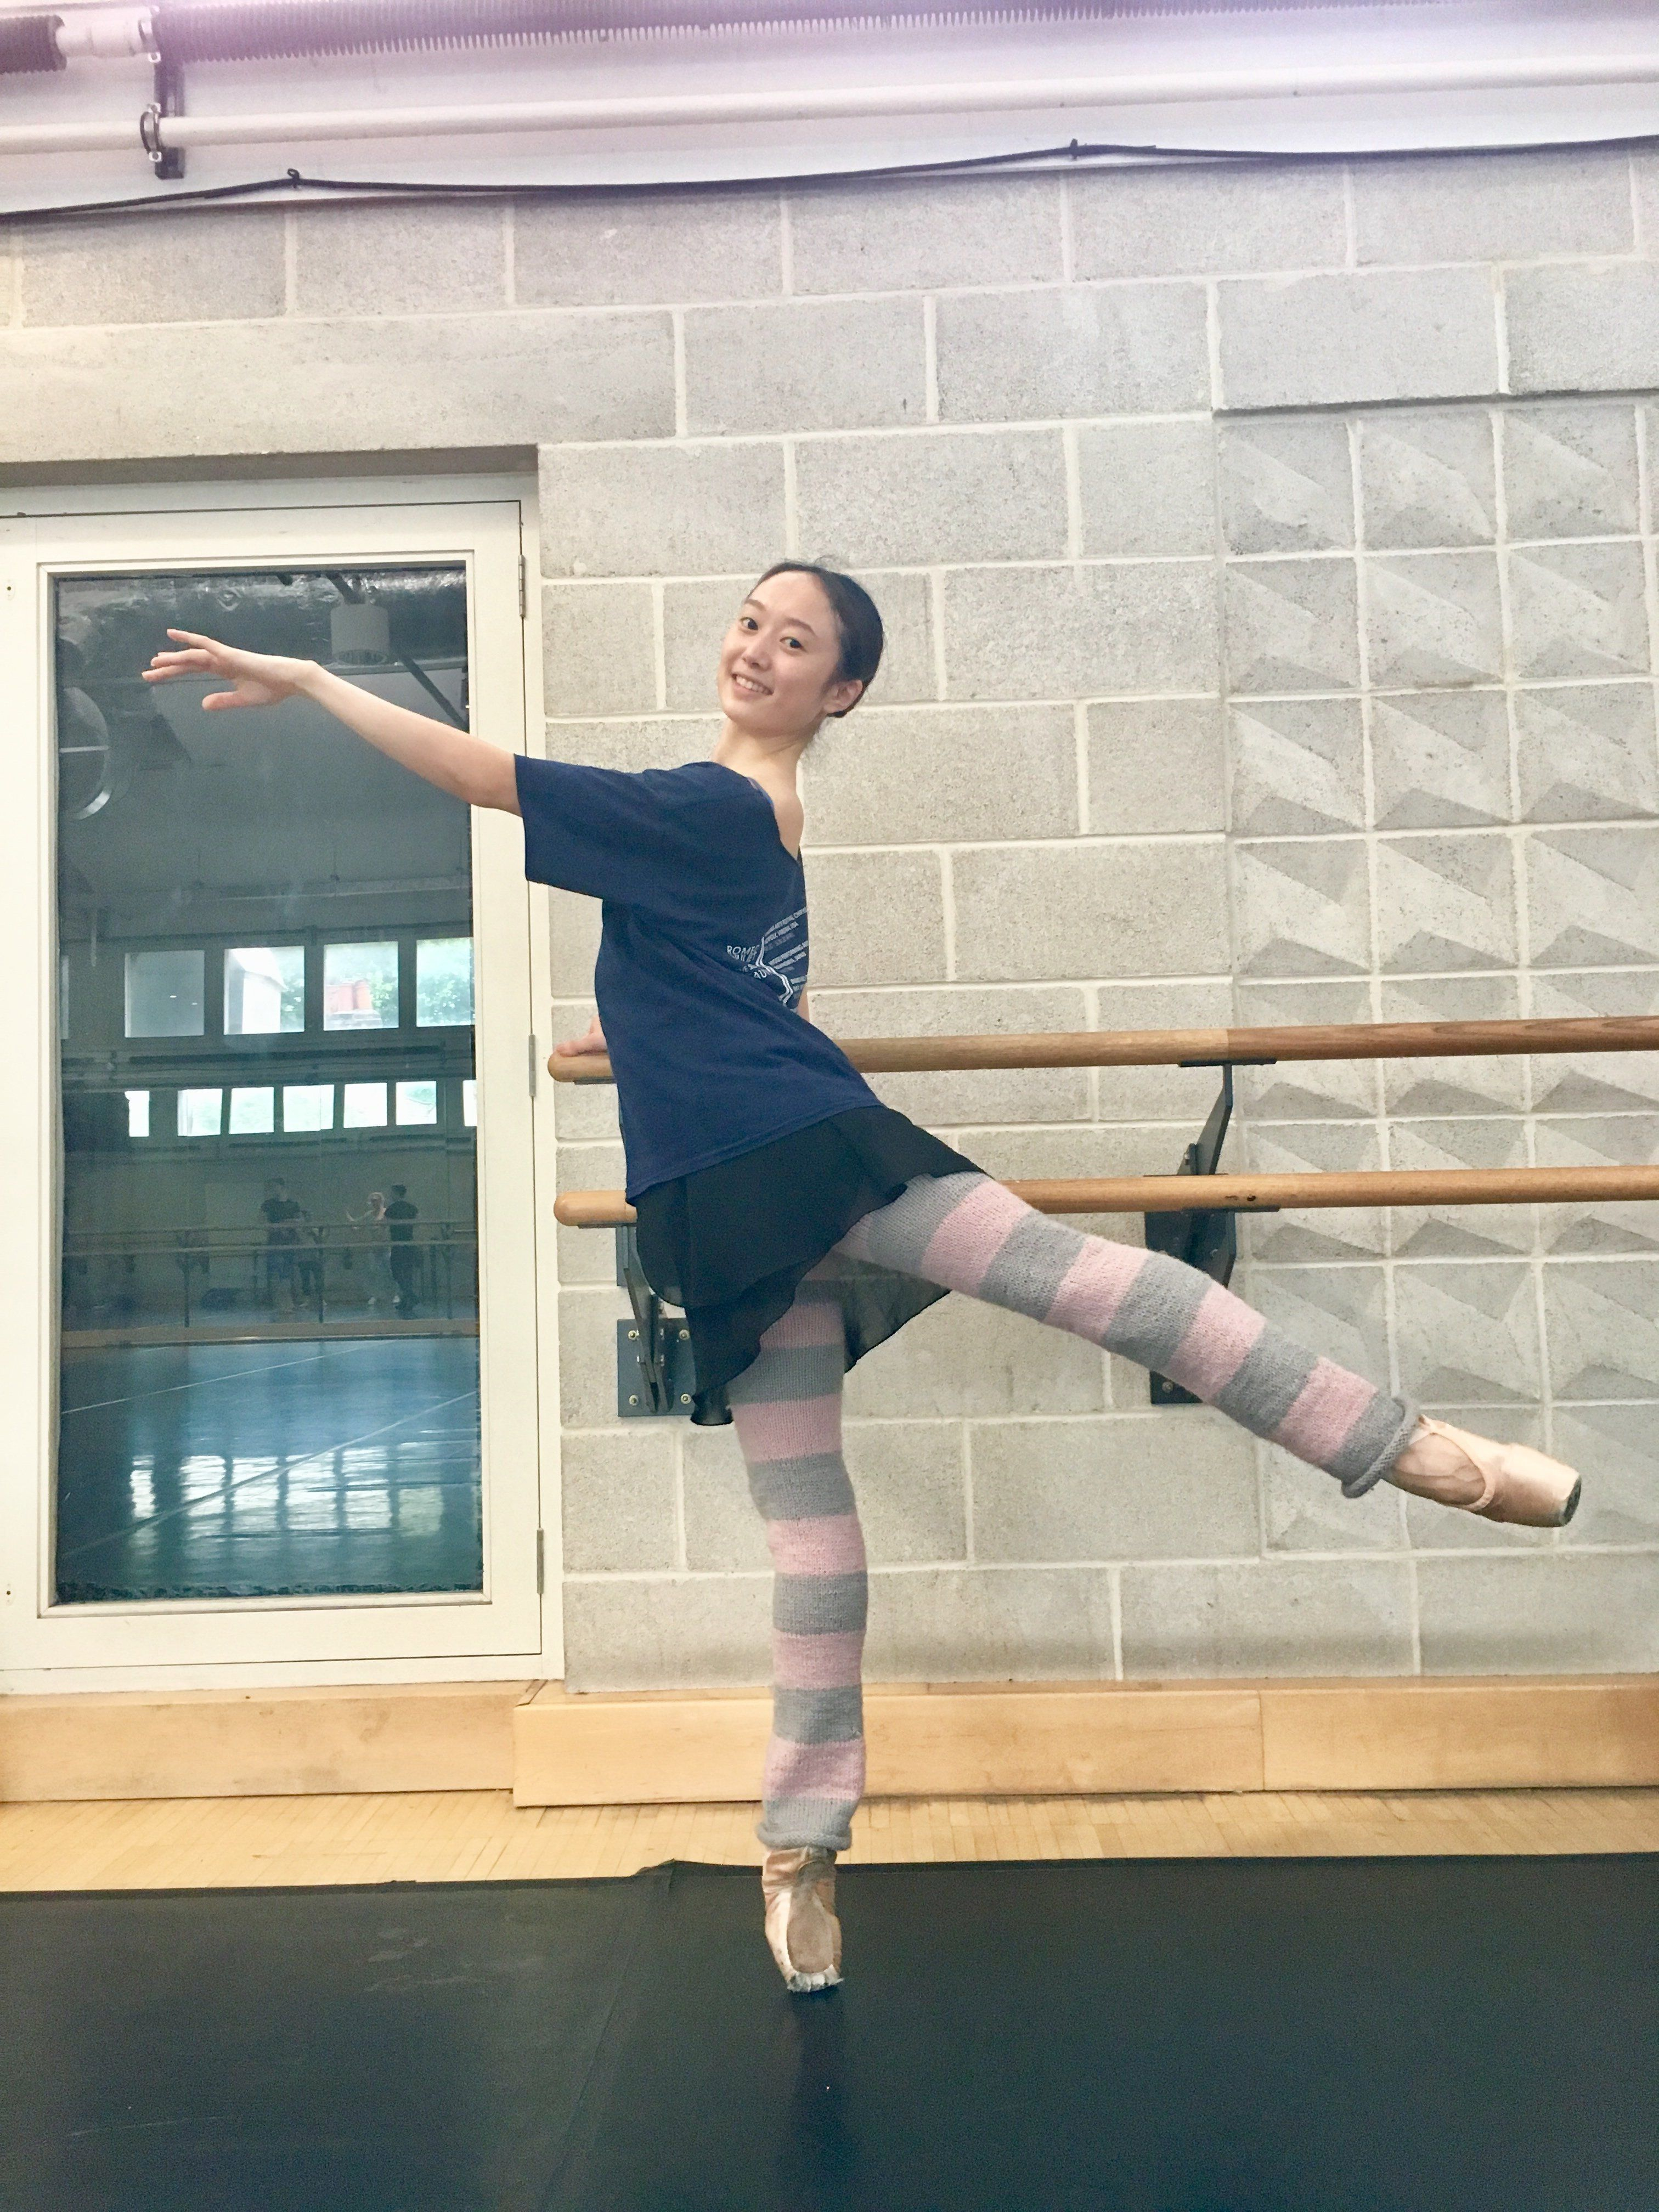 What Works For Me: 'Knitting After Dance Rehearsals Helps Me Relax'